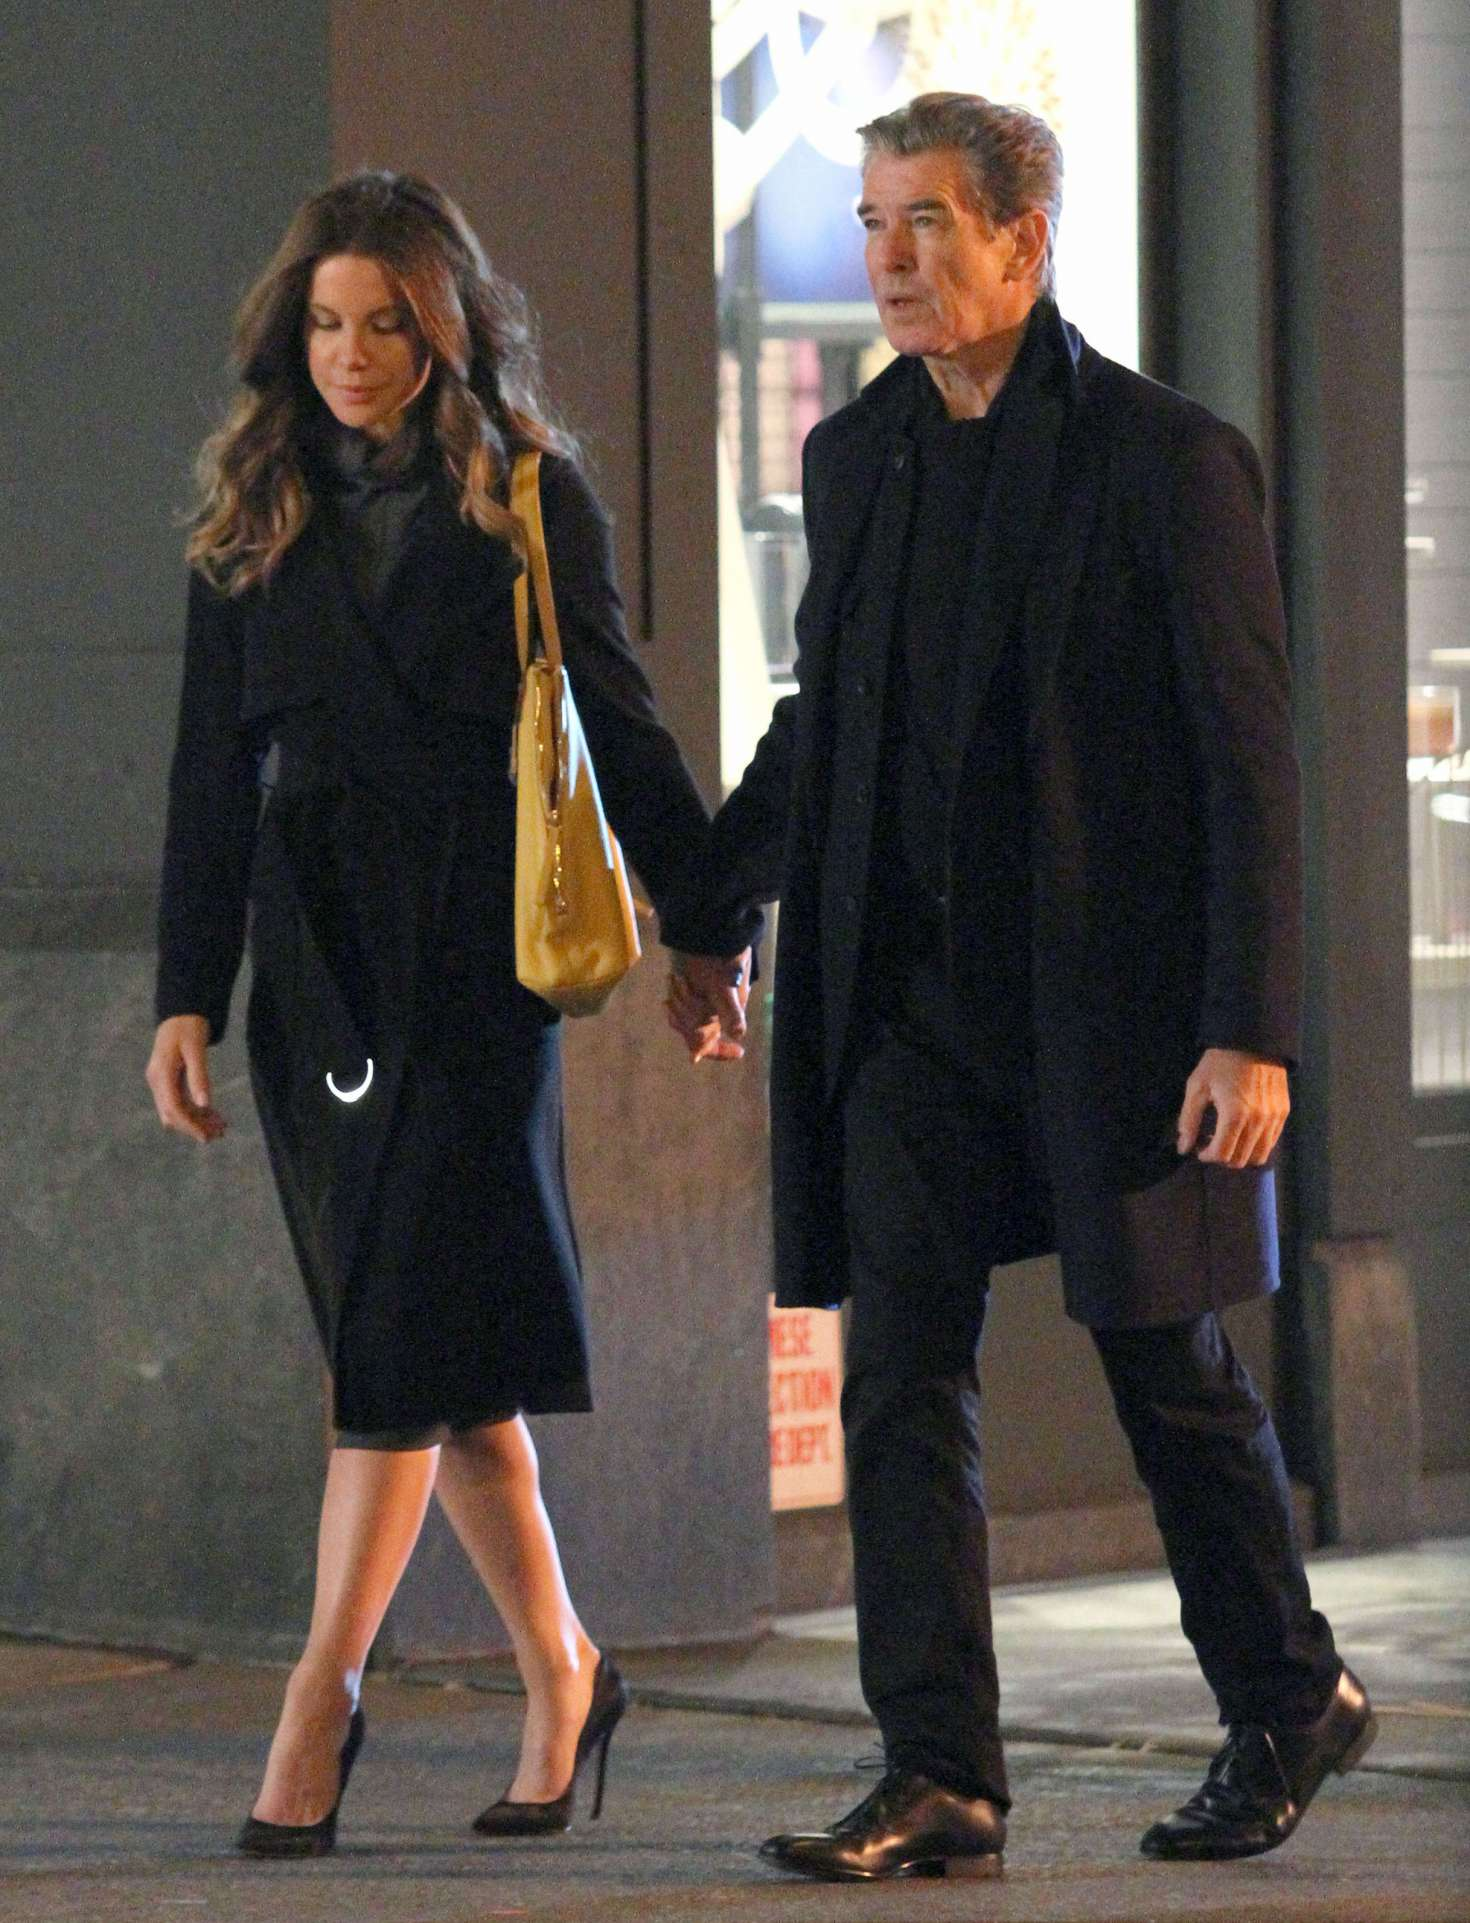 Pierce Brosnan And Kate Beckinsale On  U0026 39 The Only Living Boy